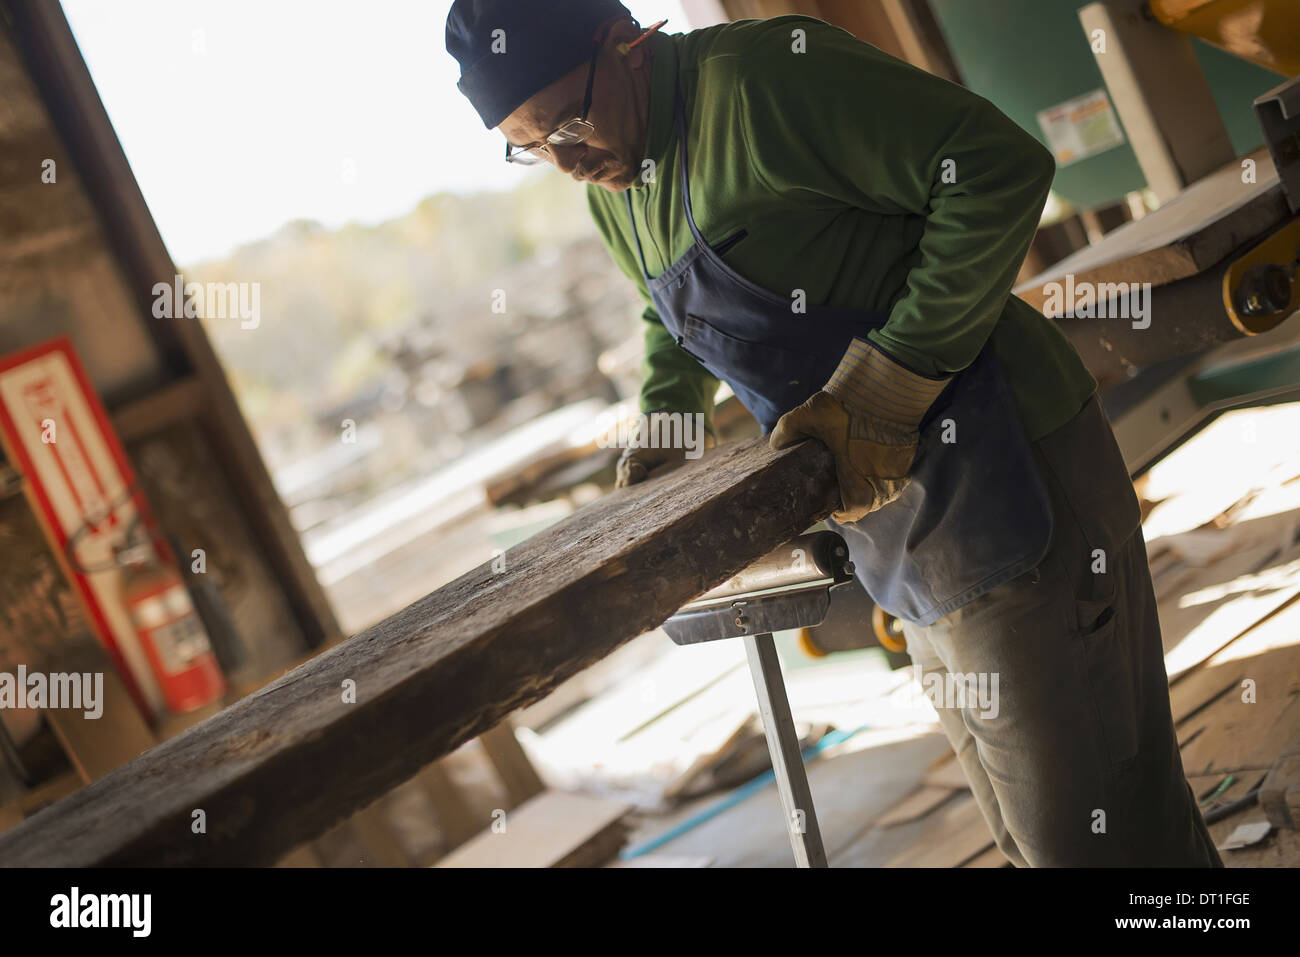 A man examining a large plank of cut wood in a reclaimed timber yard A workshop - Stock Image